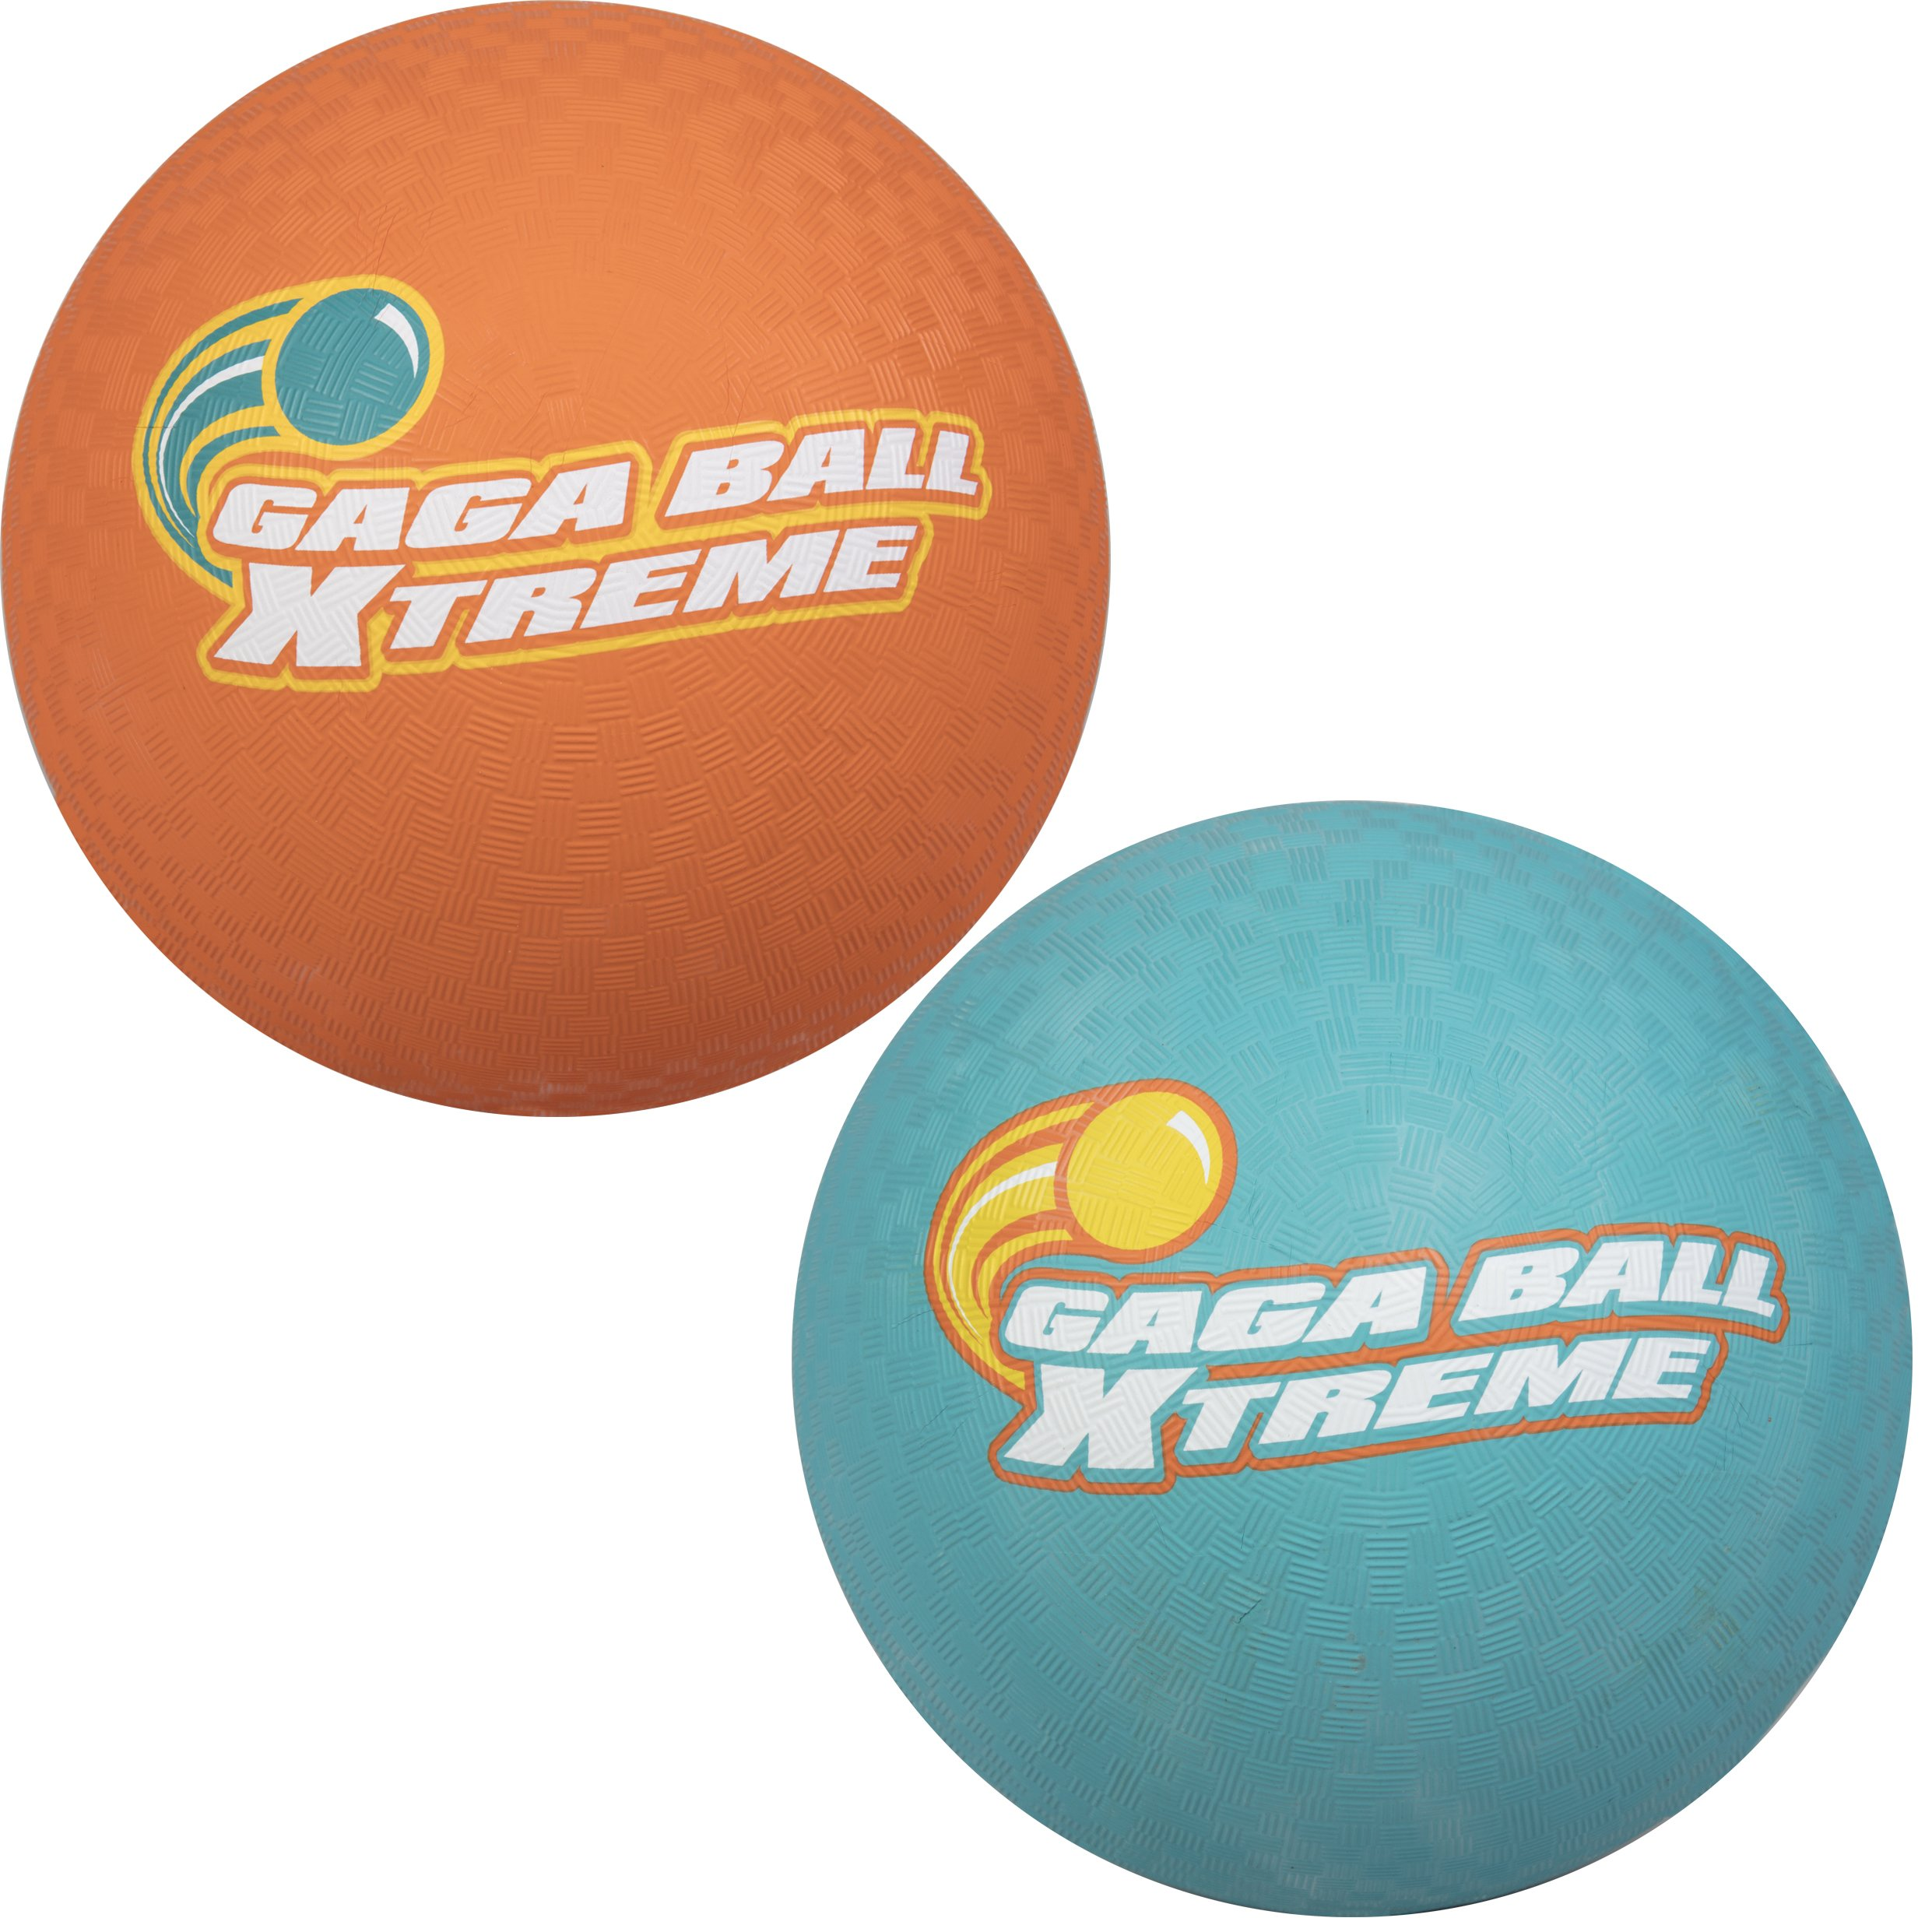 SCS Direct Gaga Playground Balls 2pk (8.5 inches) - Durable Rubber, Lightweight and Great for Dodgeball, Kickball, Gagaball Official Play by SCS Direct